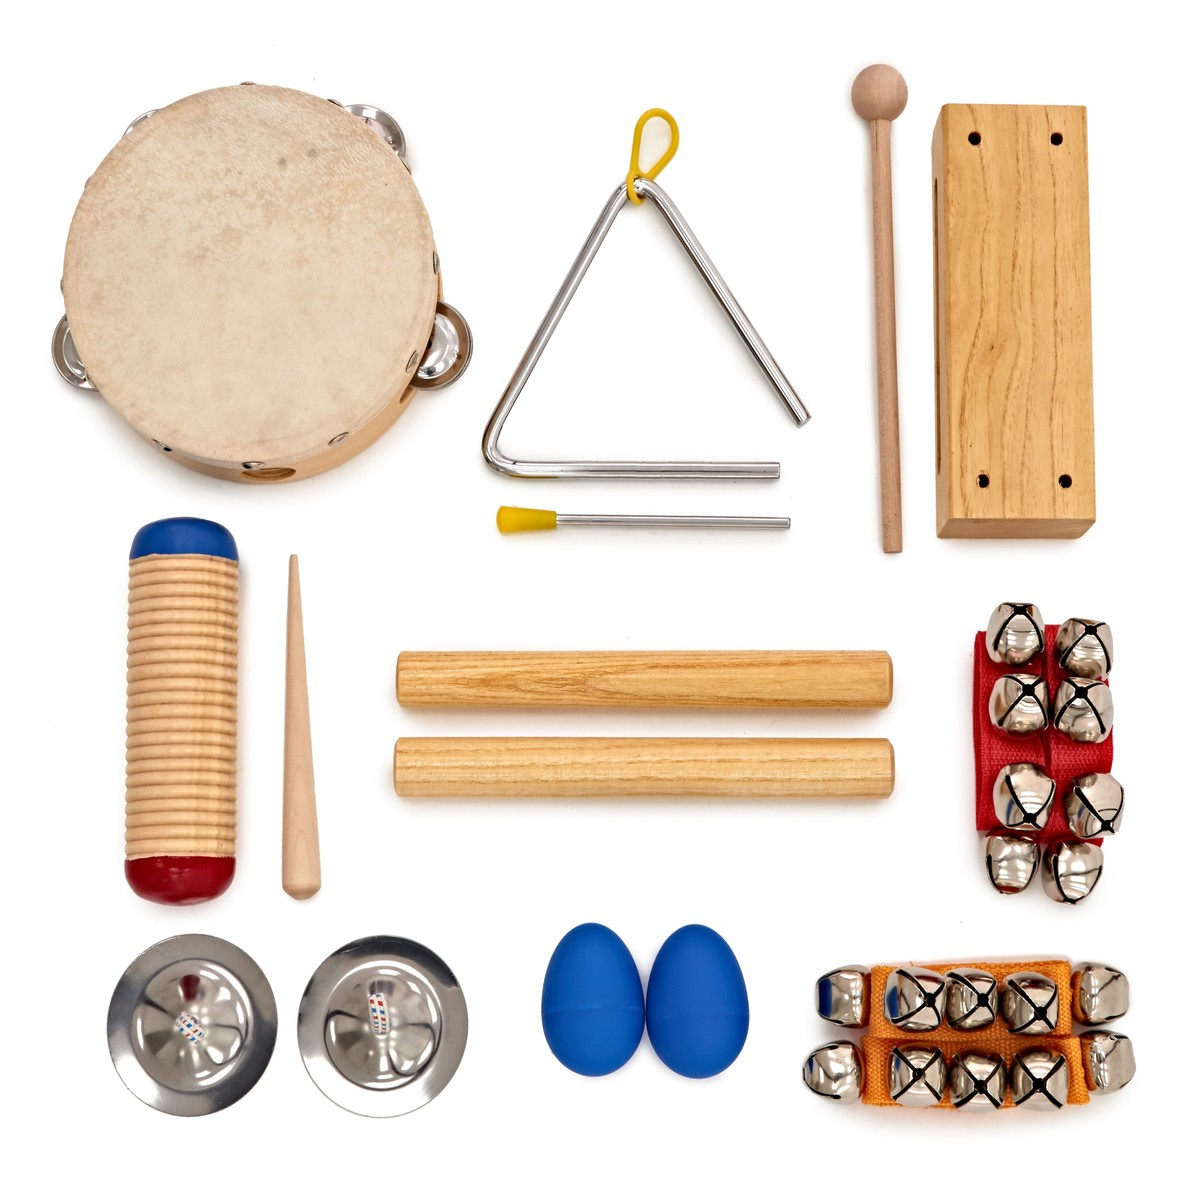 Shop now | Shake and Jingle 9 Piece Kids Percussion Set by Gear4music